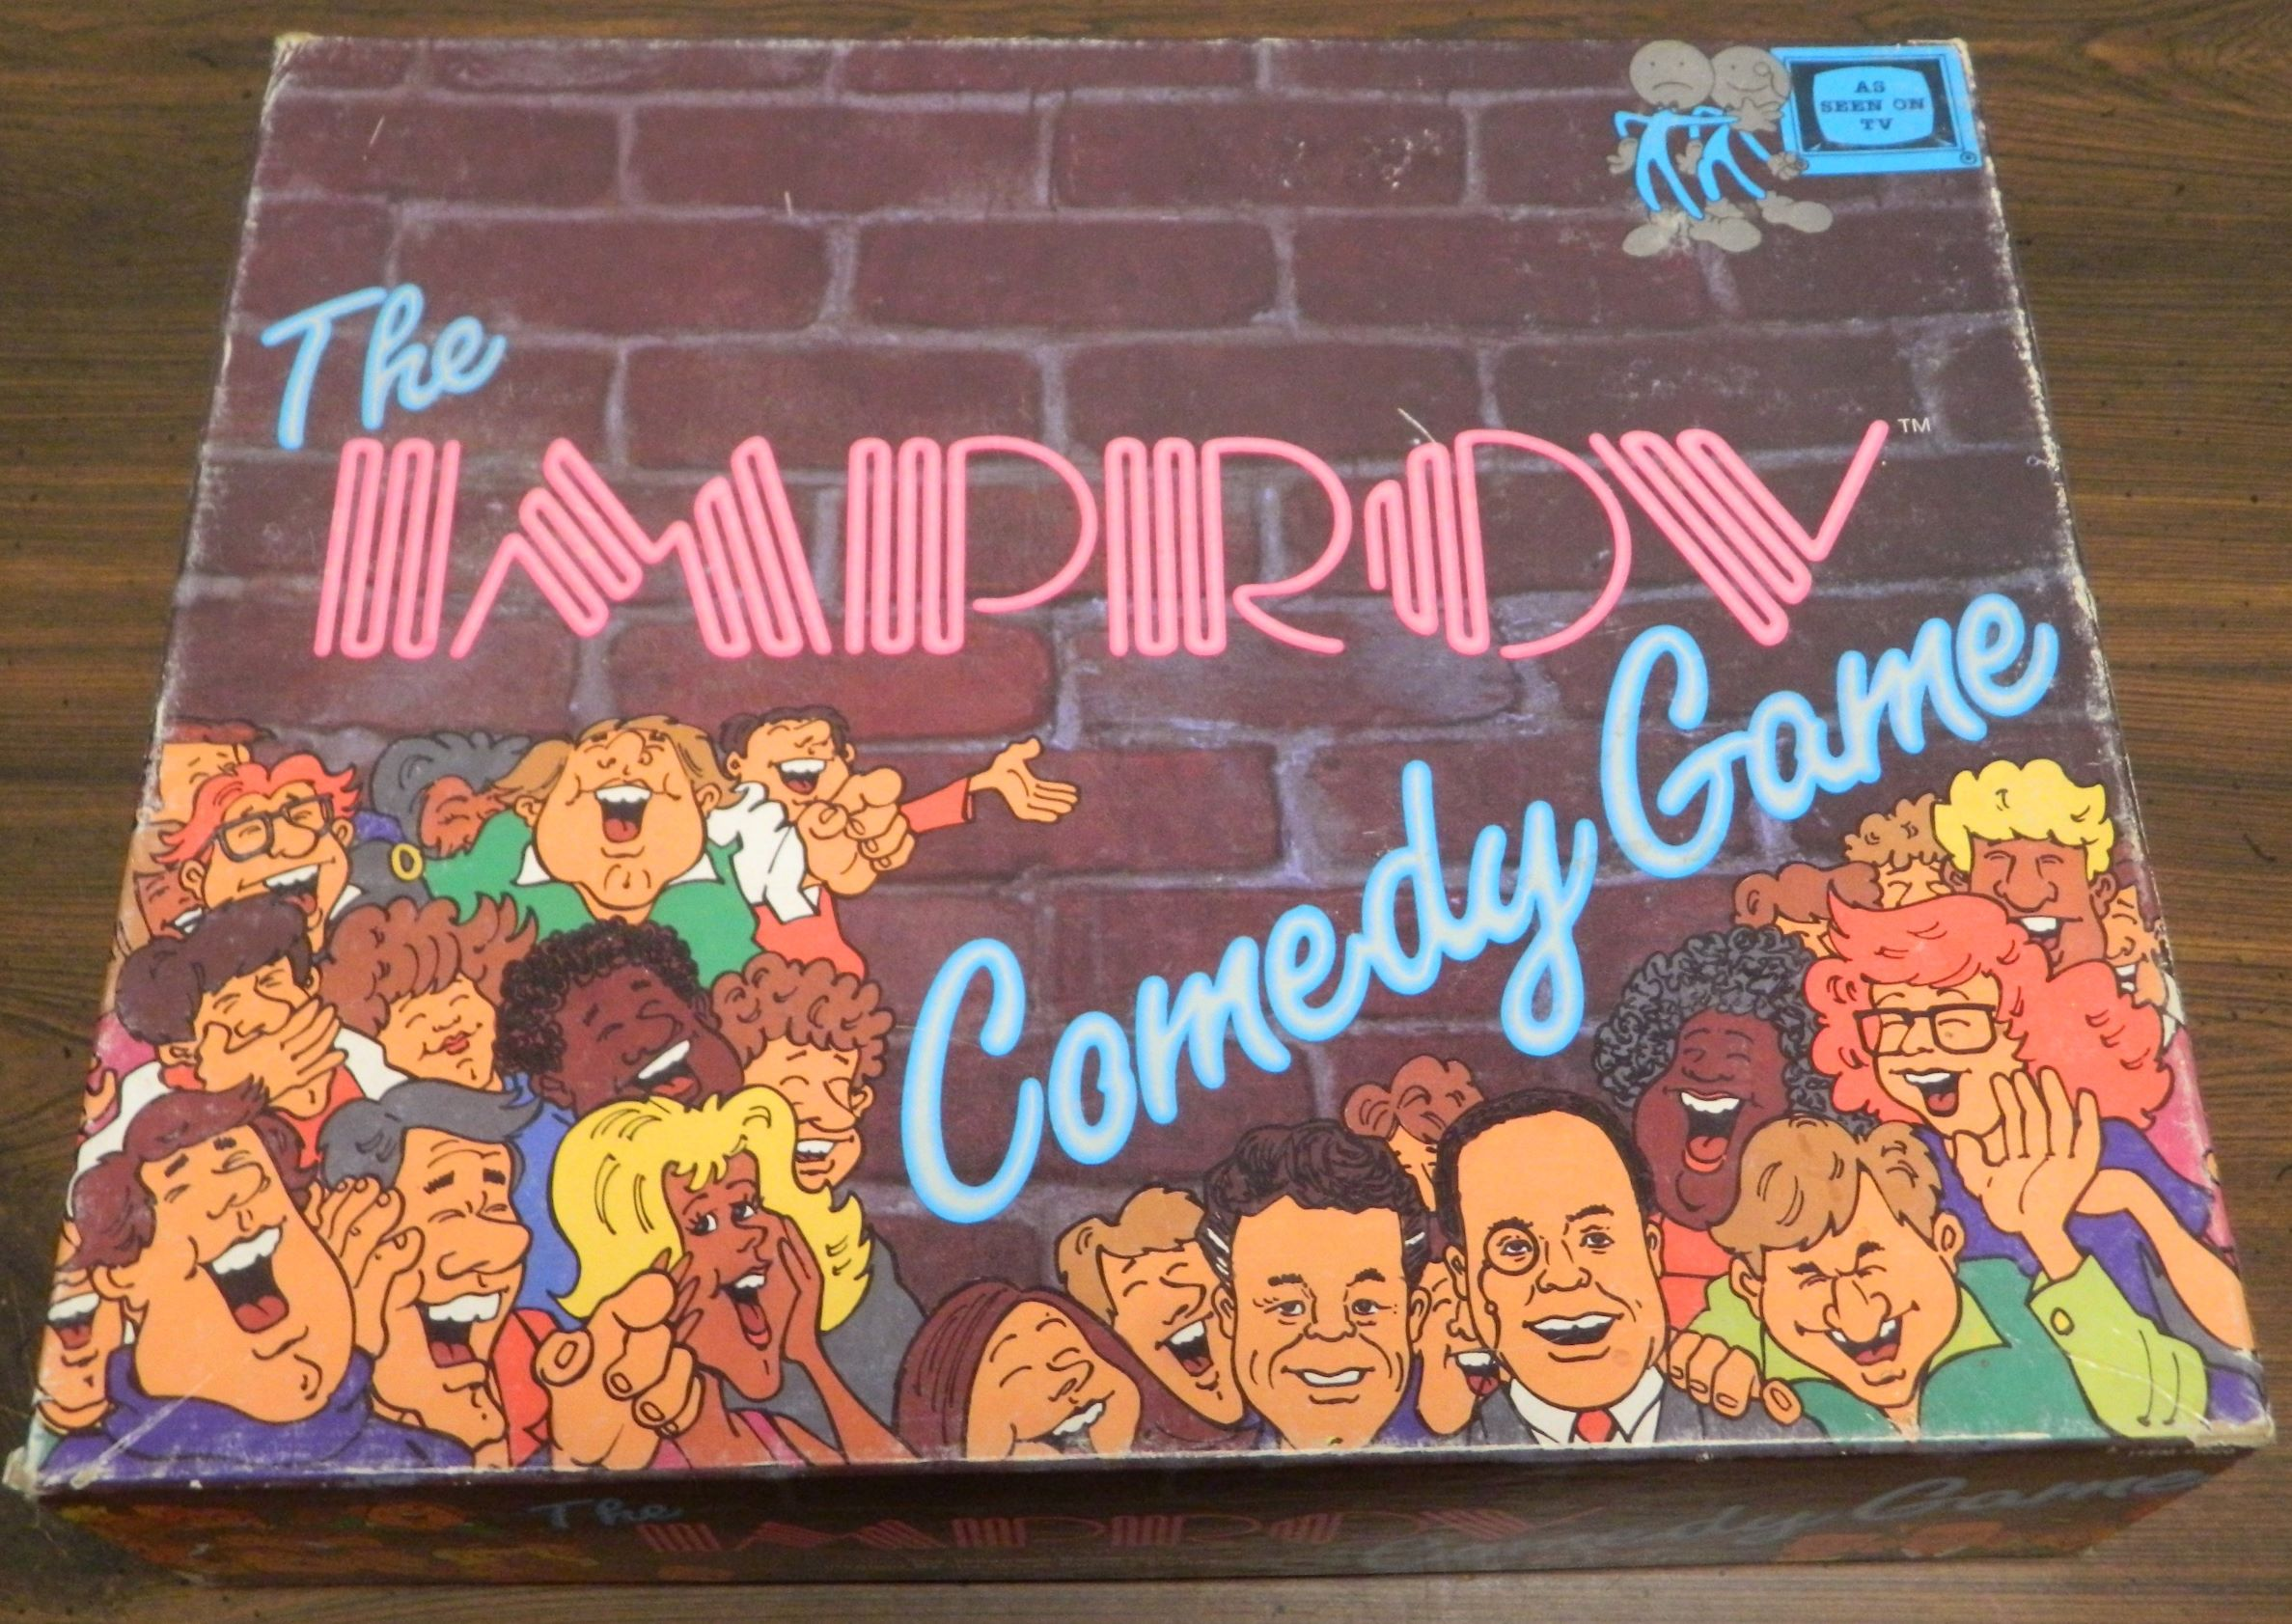 Box Improv Comedy Game